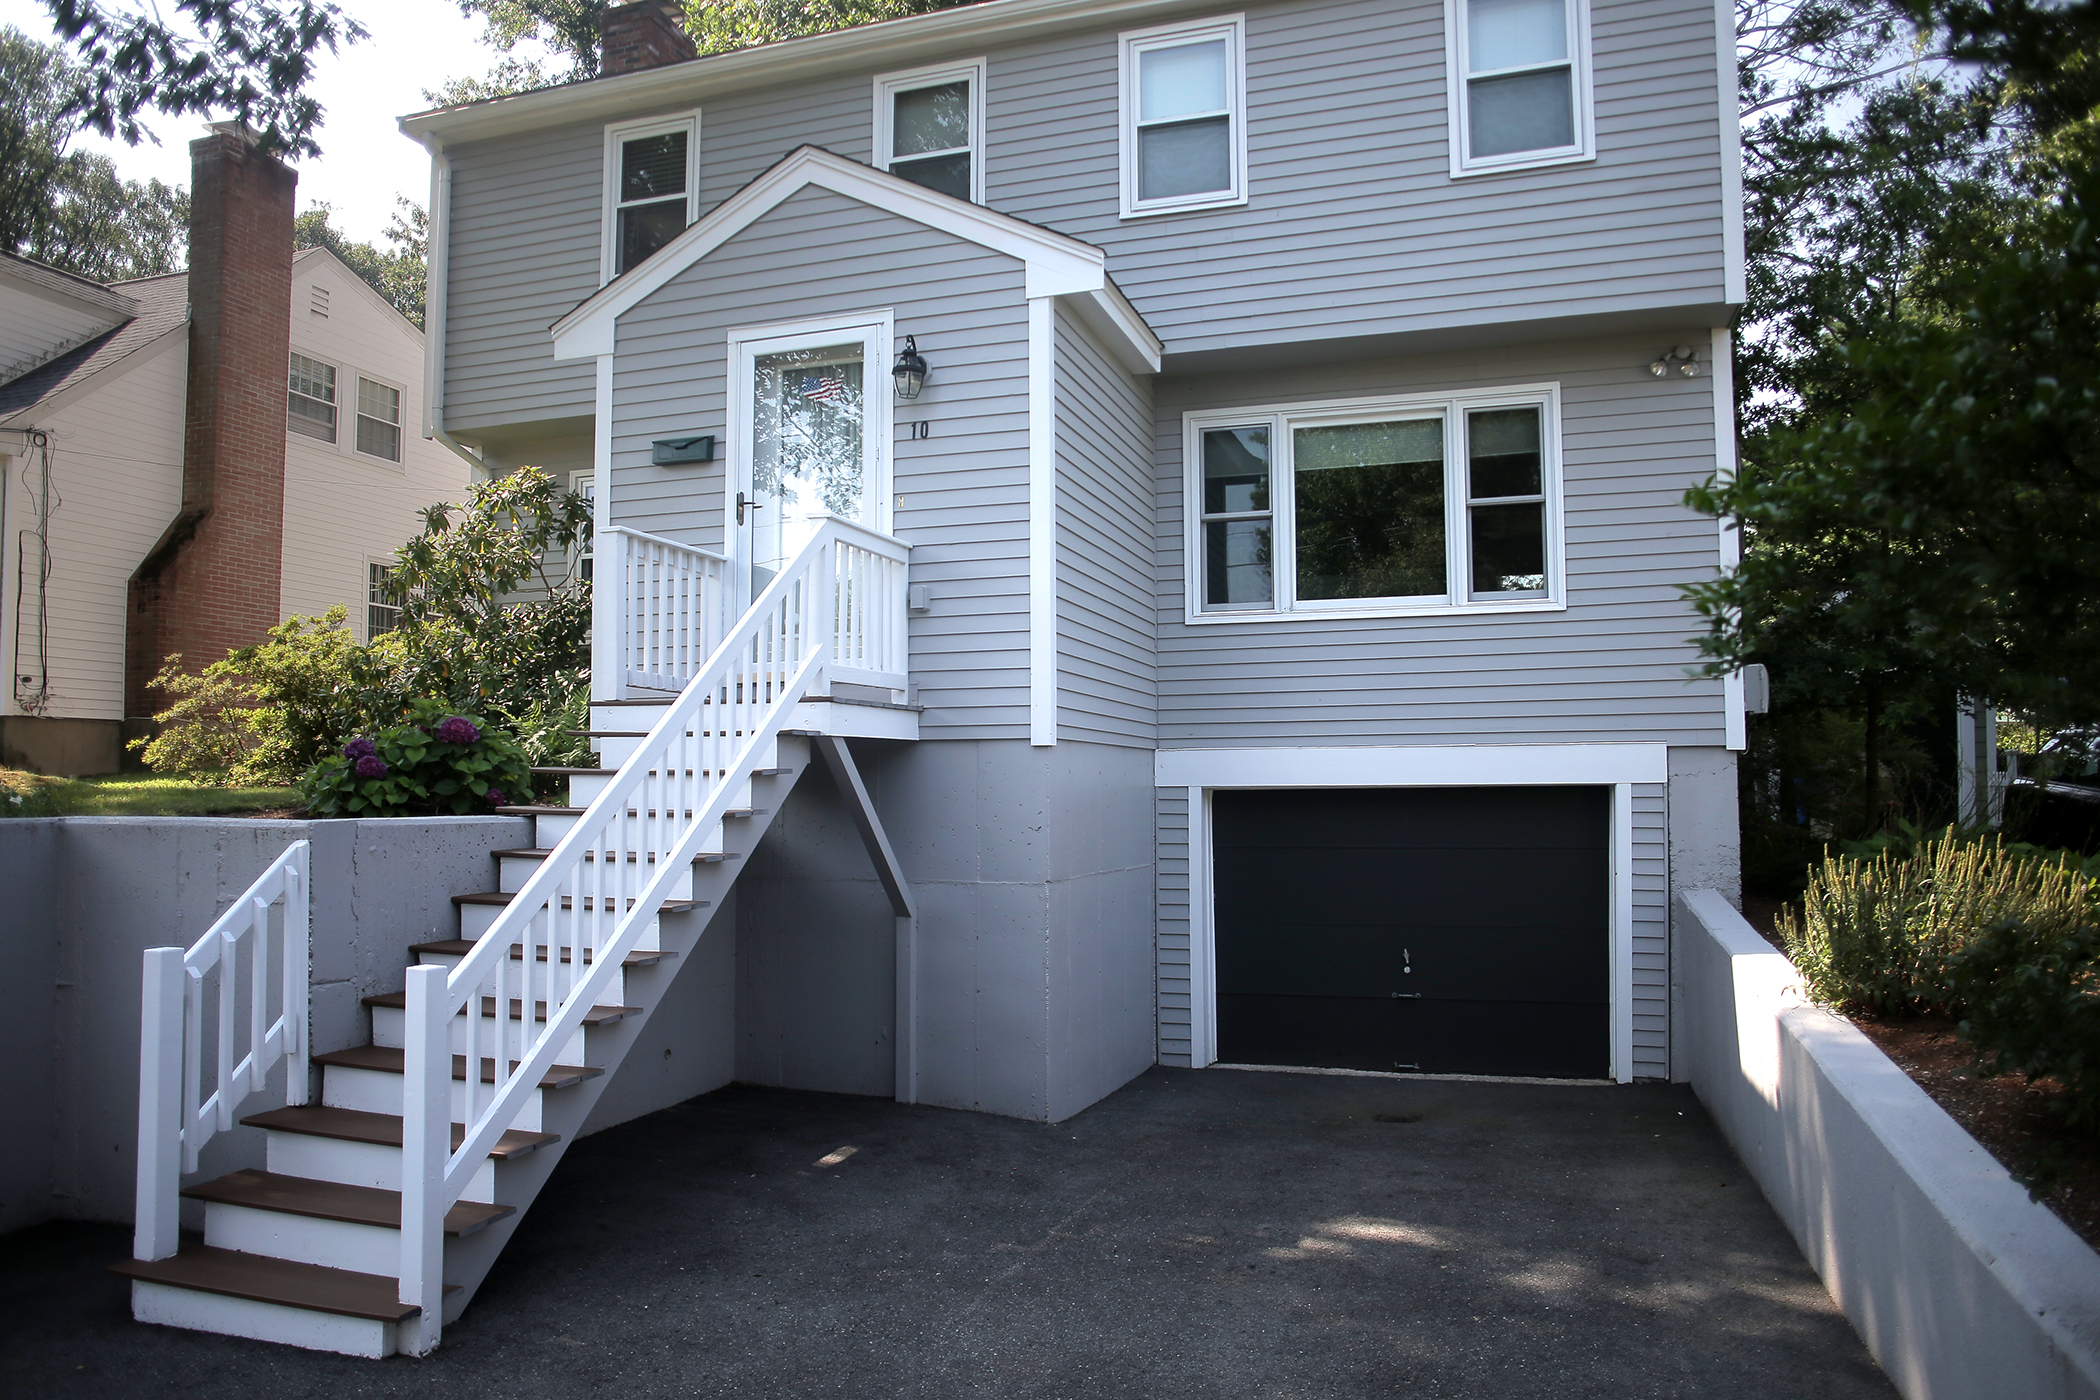 On Waltham hill, a three-bedroom home for $619,000